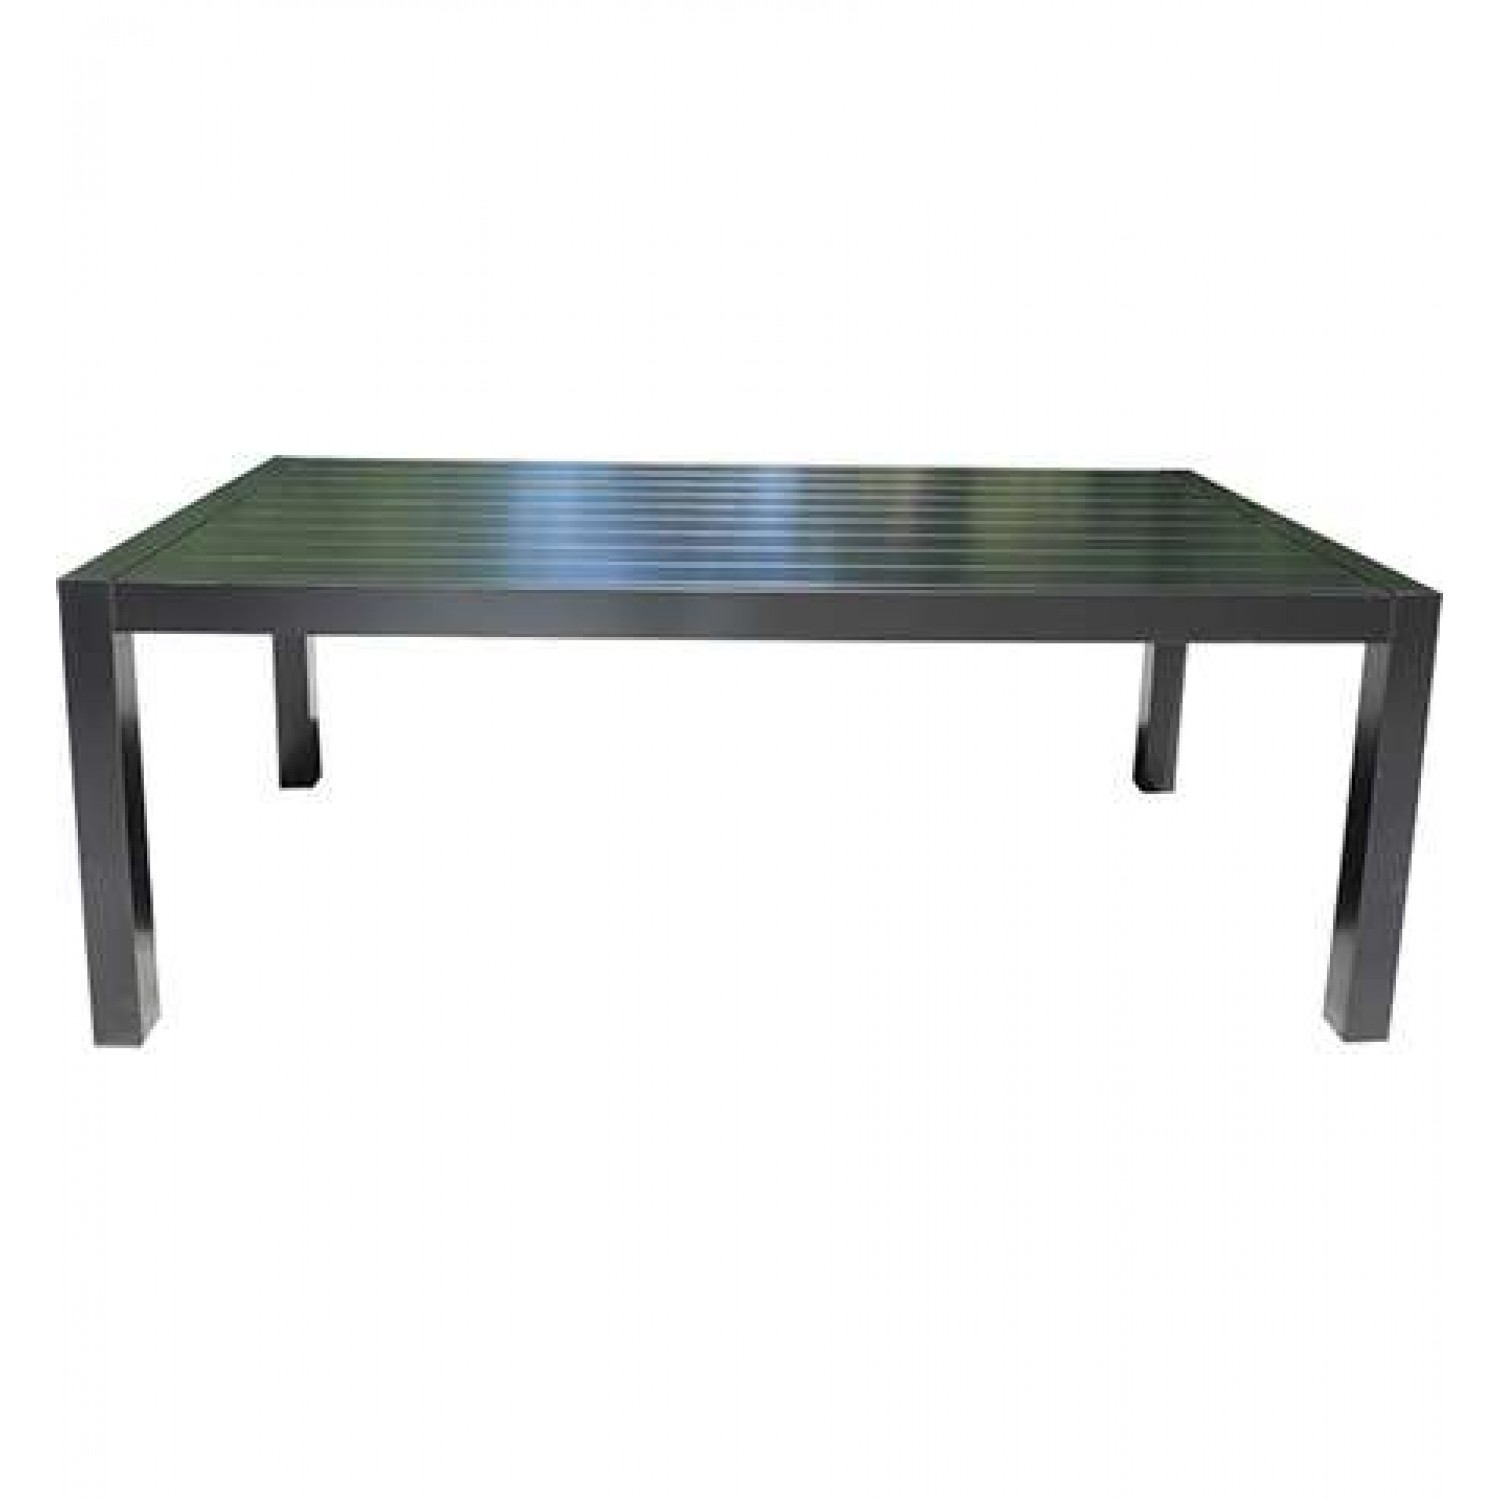 Millcroft Outdoor Dining Table Black